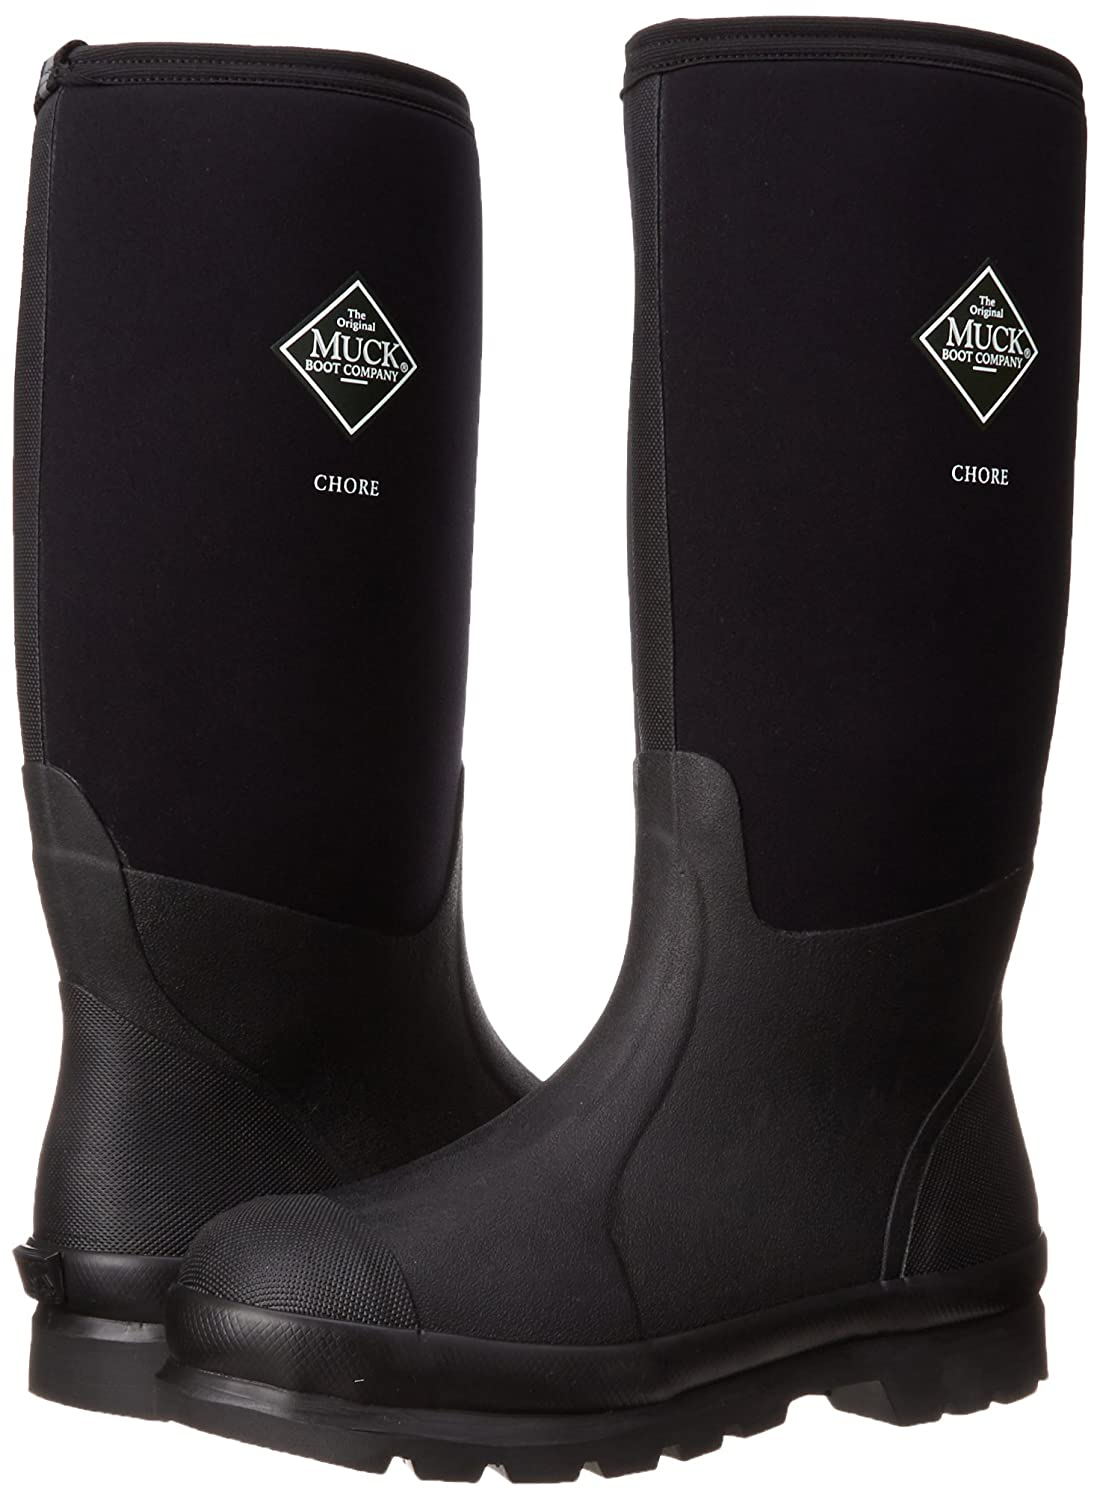 Muck Boots Chore High Unisex Adults&39 Work Wellingtons: Amazon.co